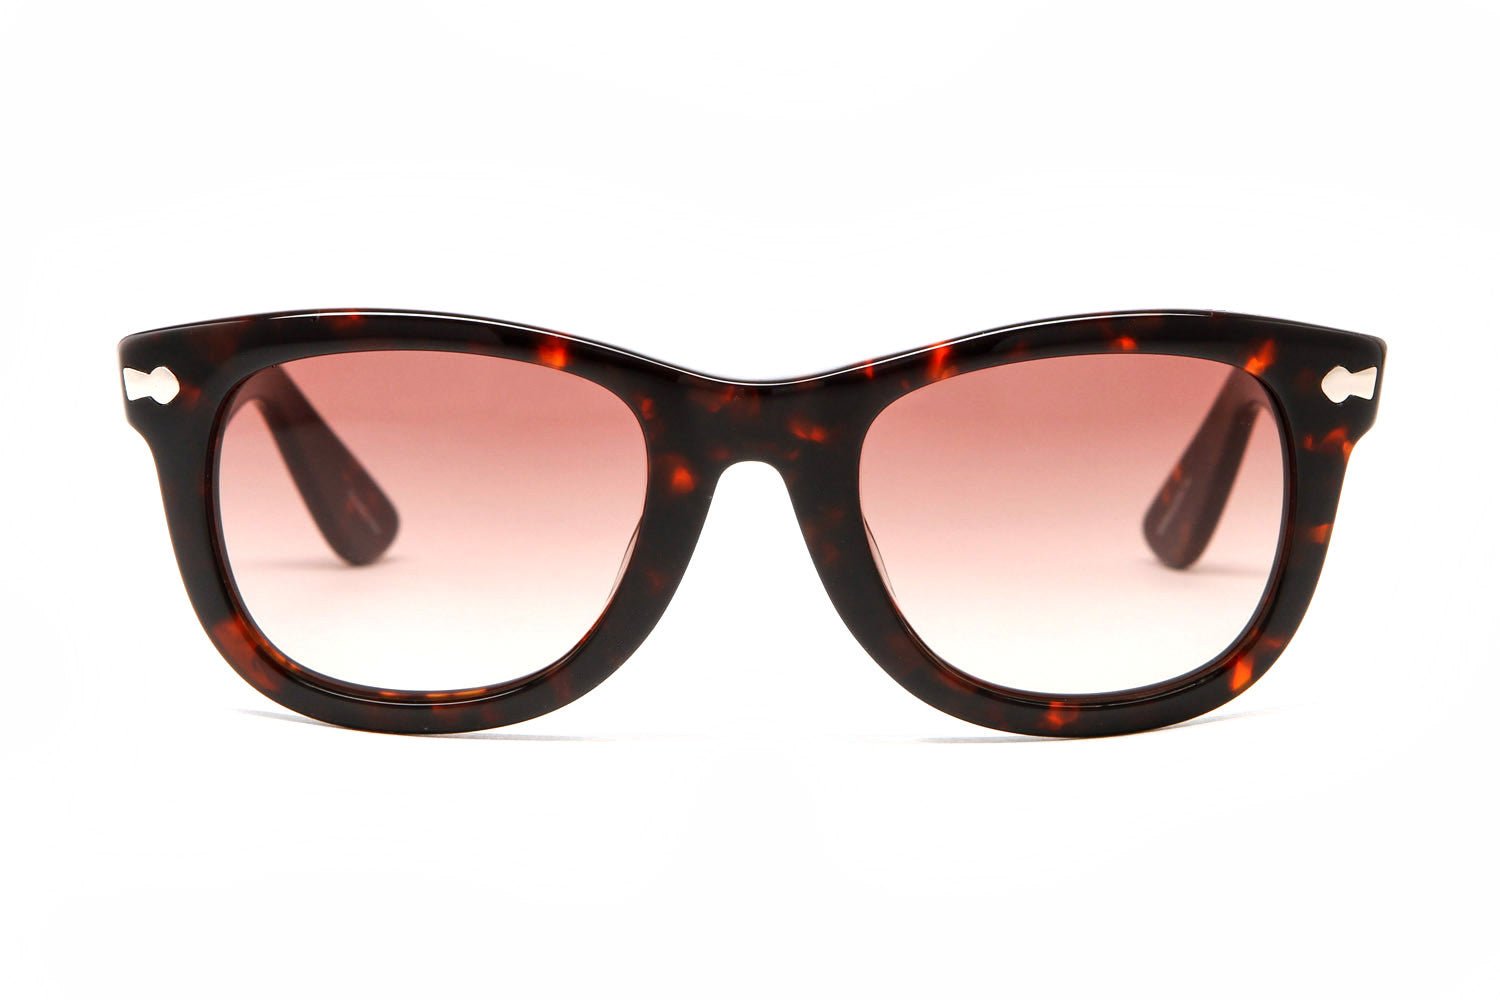 Detox Sunglasses (Dark Tortoise/Bronze Gradient)